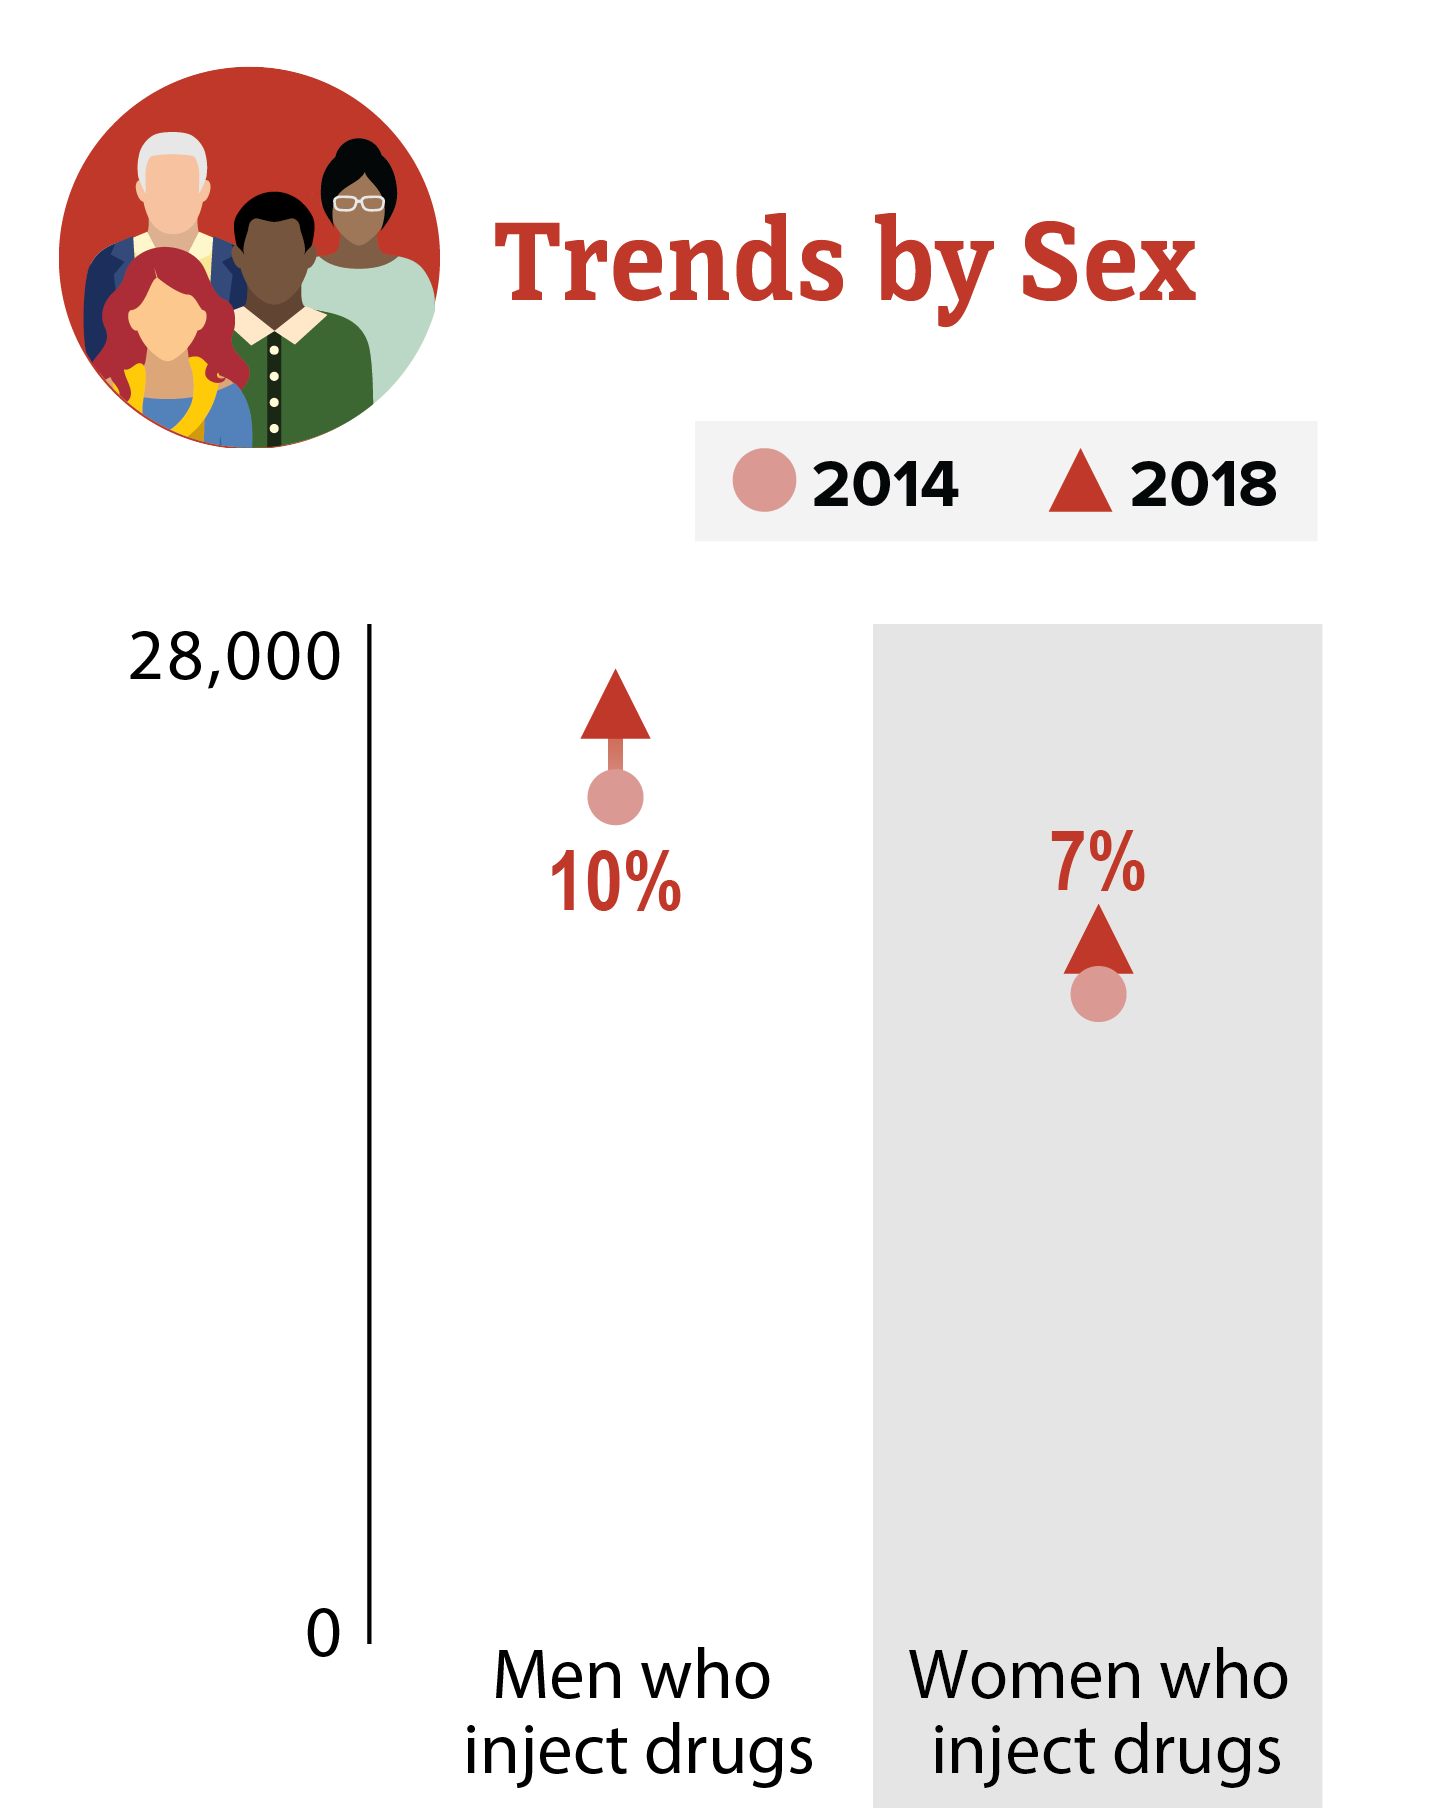 This trend chart shows HIV diagnoses among people who inject drugs in the US and dependent areas from 2014 to 2018. By sex, men who inject drugs increased 10% and women who inject drugs increased 7%.